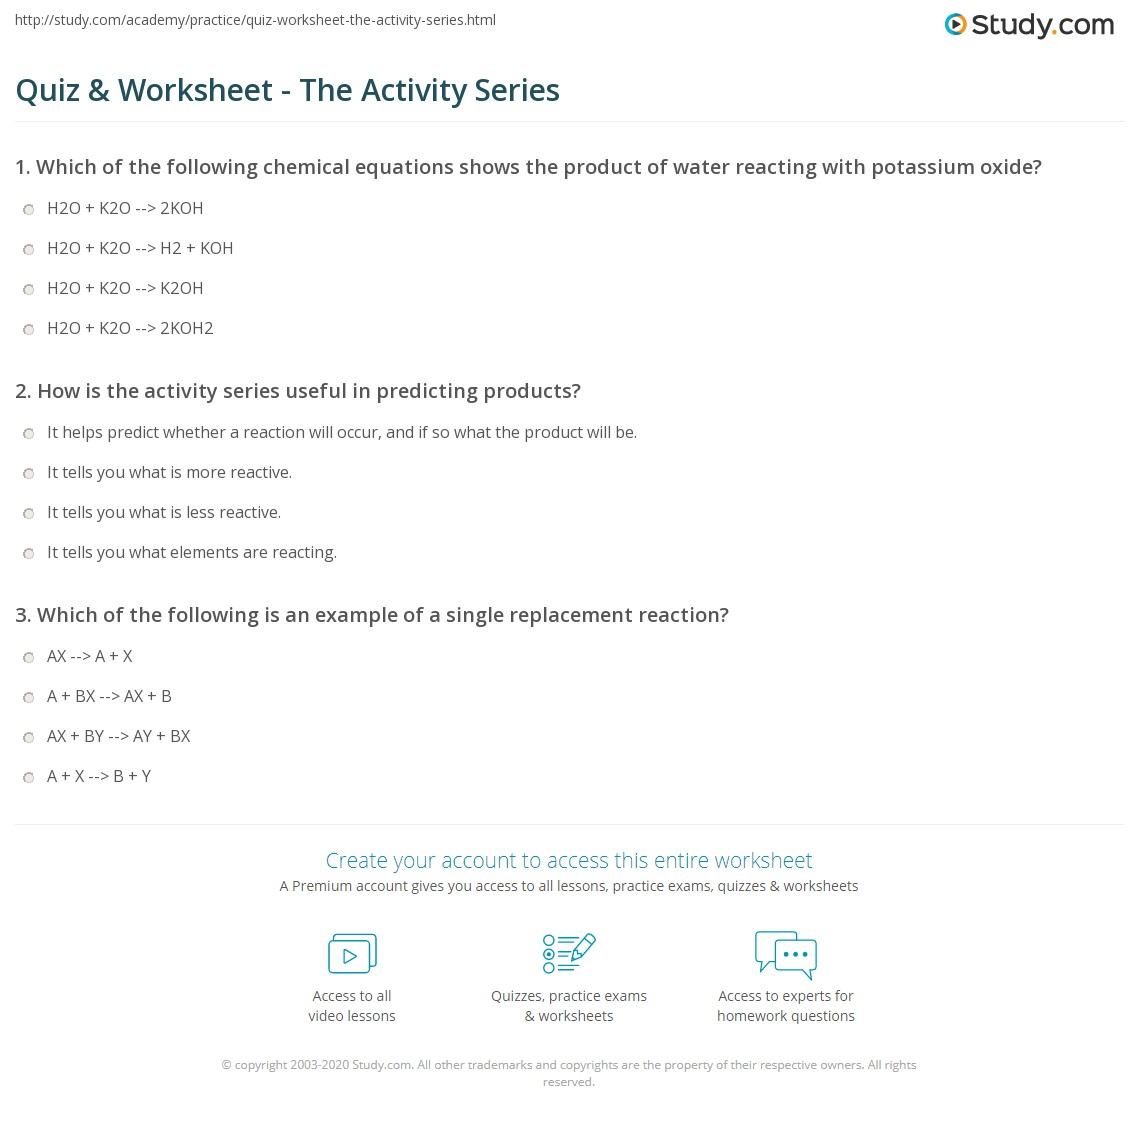 Aldiablosus  Sweet Quiz Amp Worksheet  The Activity Series  Studycom With Likable Print The Activity Series Predicting Products Of Single Displacement Reactions Worksheet With Lovely Worksheets For Special Needs Also Times Of The Day Worksheet In Addition Telling Time For Kids Worksheets And Tiddalick The Frog Worksheets As Well As Adjective Practice Worksheet Additionally Drawing Lines Of Symmetry Worksheet From Studycom With Aldiablosus  Likable Quiz Amp Worksheet  The Activity Series  Studycom With Lovely Print The Activity Series Predicting Products Of Single Displacement Reactions Worksheet And Sweet Worksheets For Special Needs Also Times Of The Day Worksheet In Addition Telling Time For Kids Worksheets From Studycom